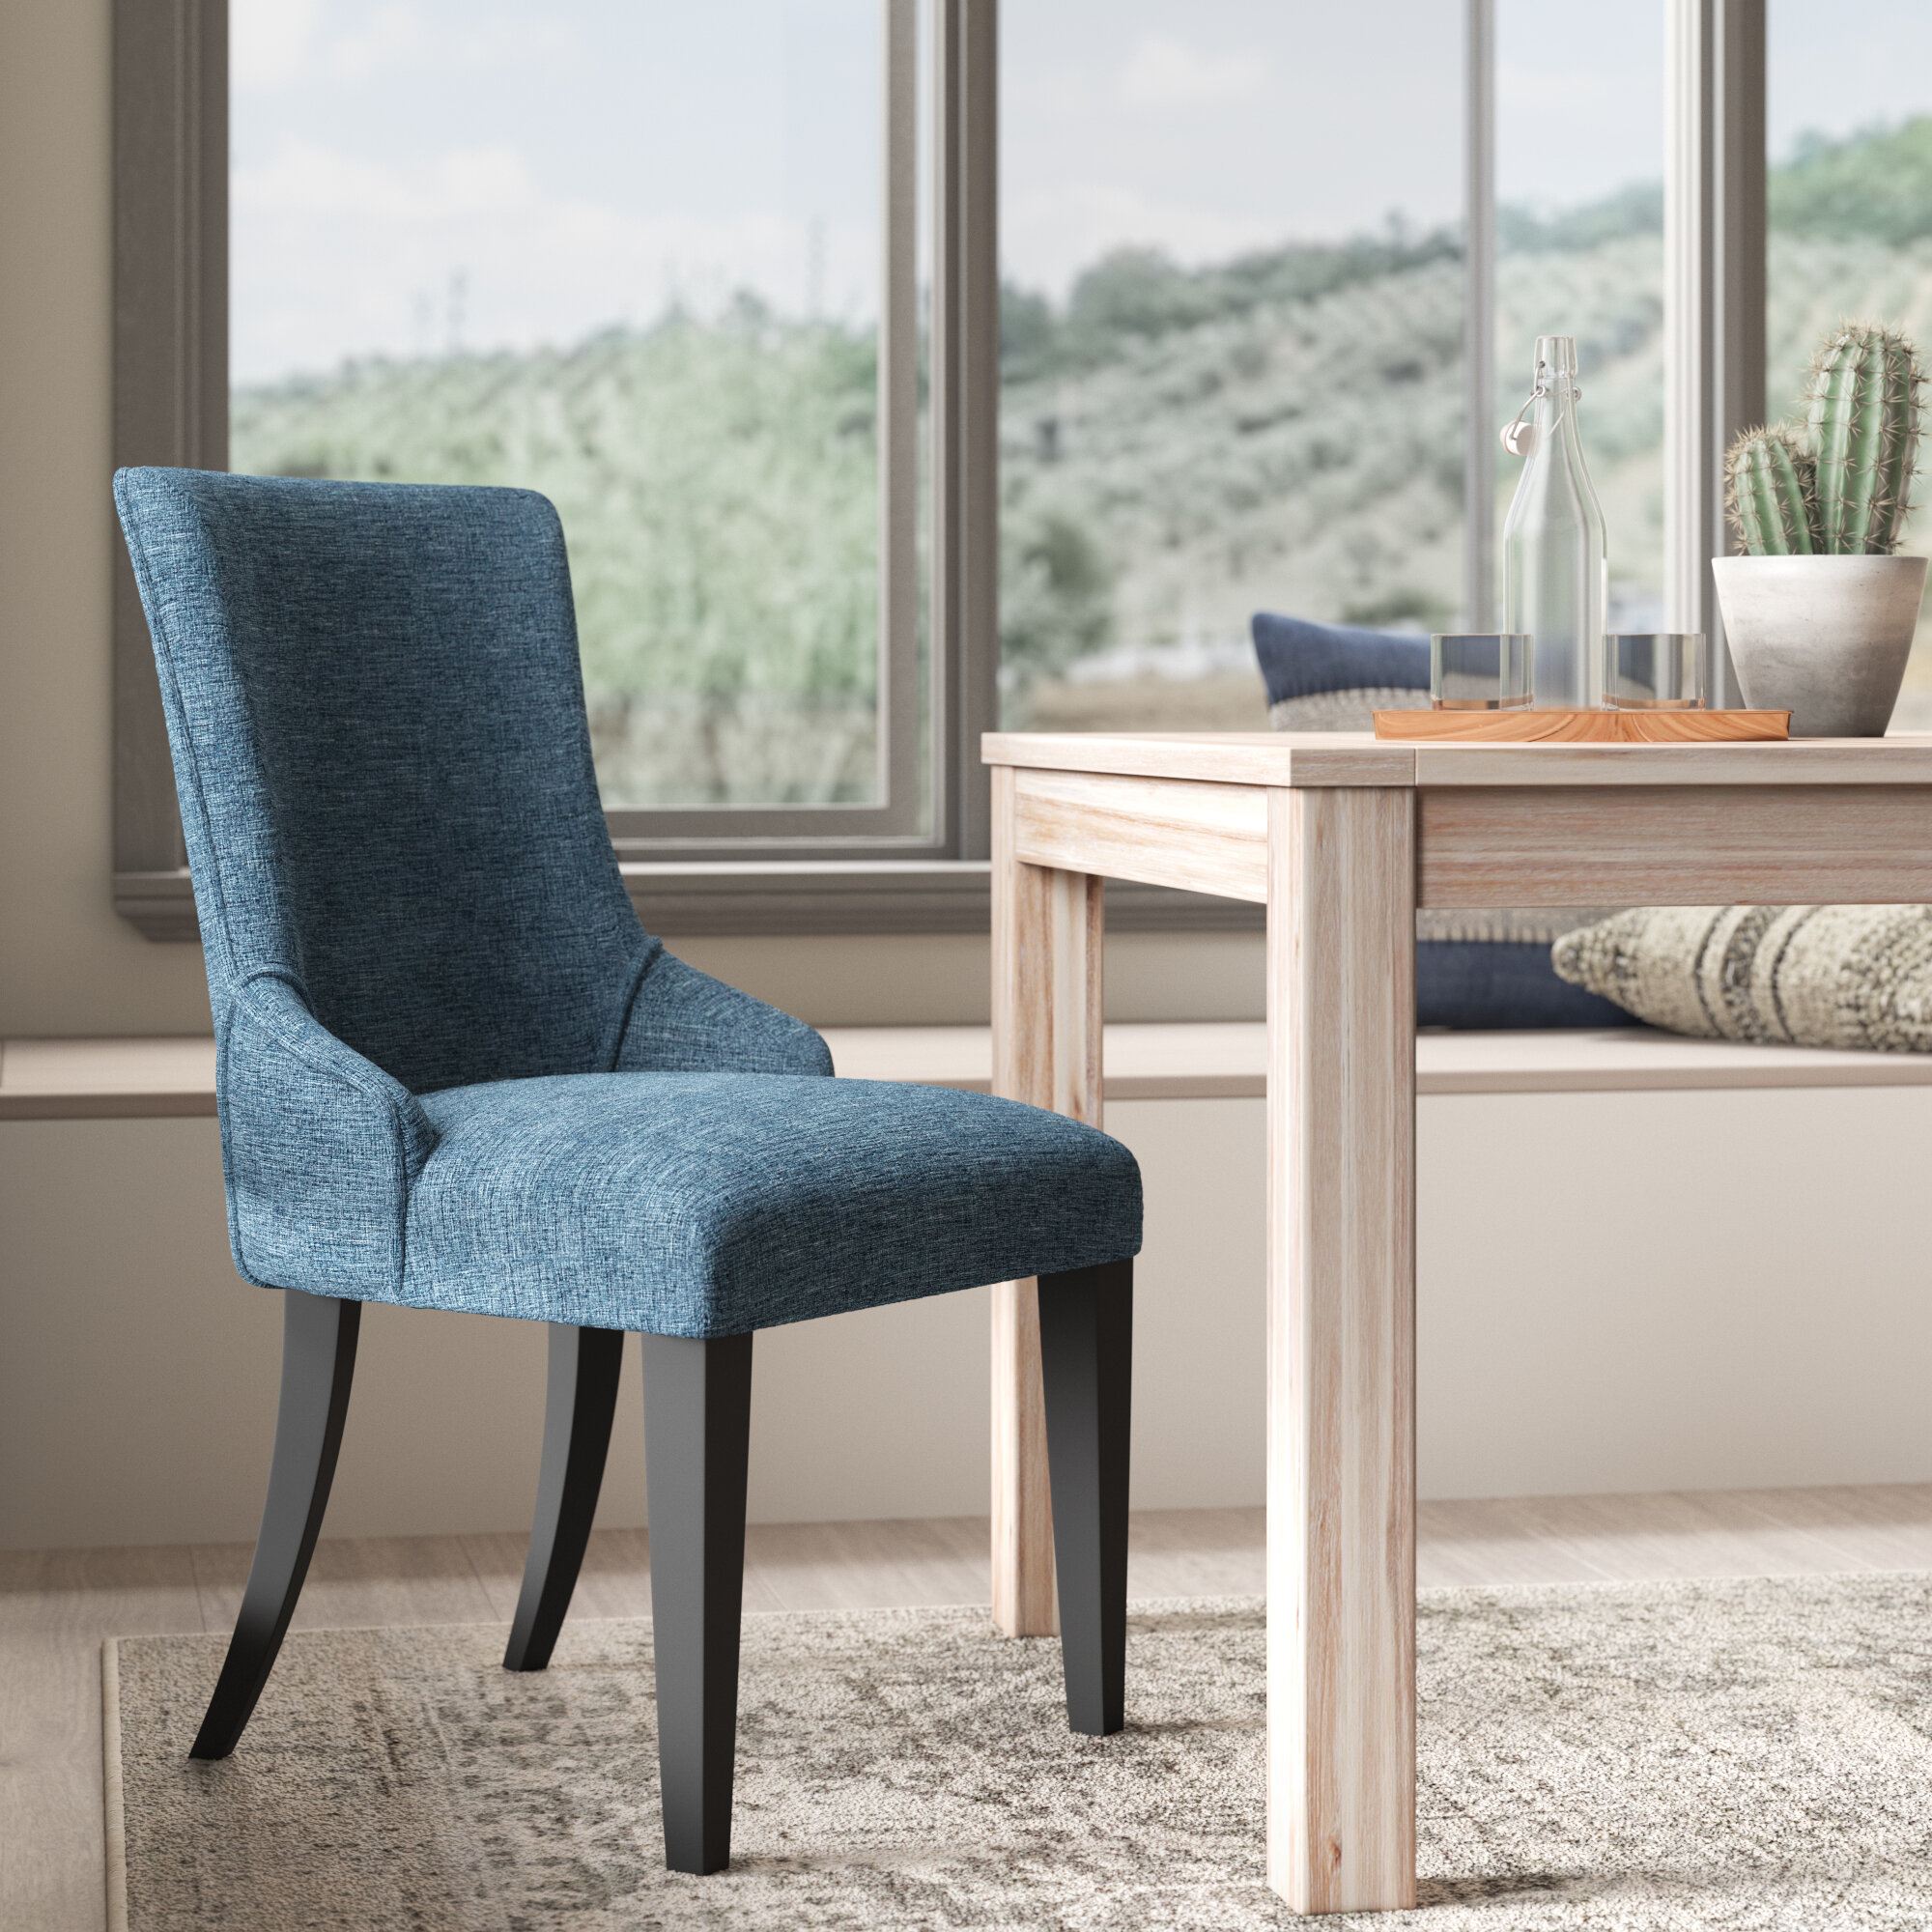 Wrought Studio Fincastle Upholstered Dining Chair In Blue Reviews Wayfair